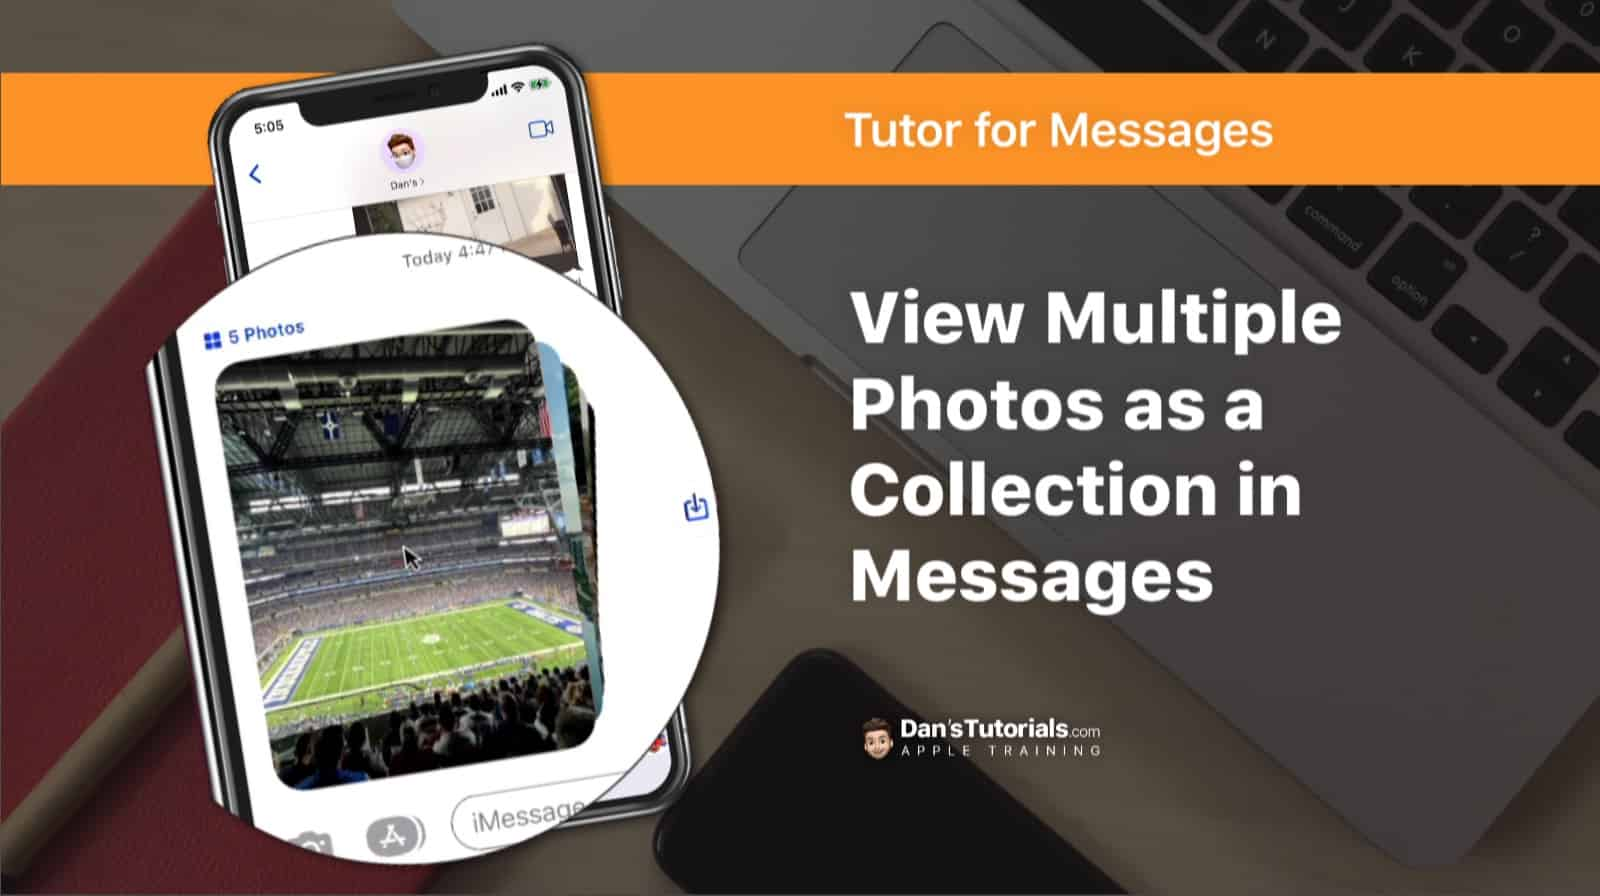 View Multiple Photos as a Collection in Messages on the iPhone